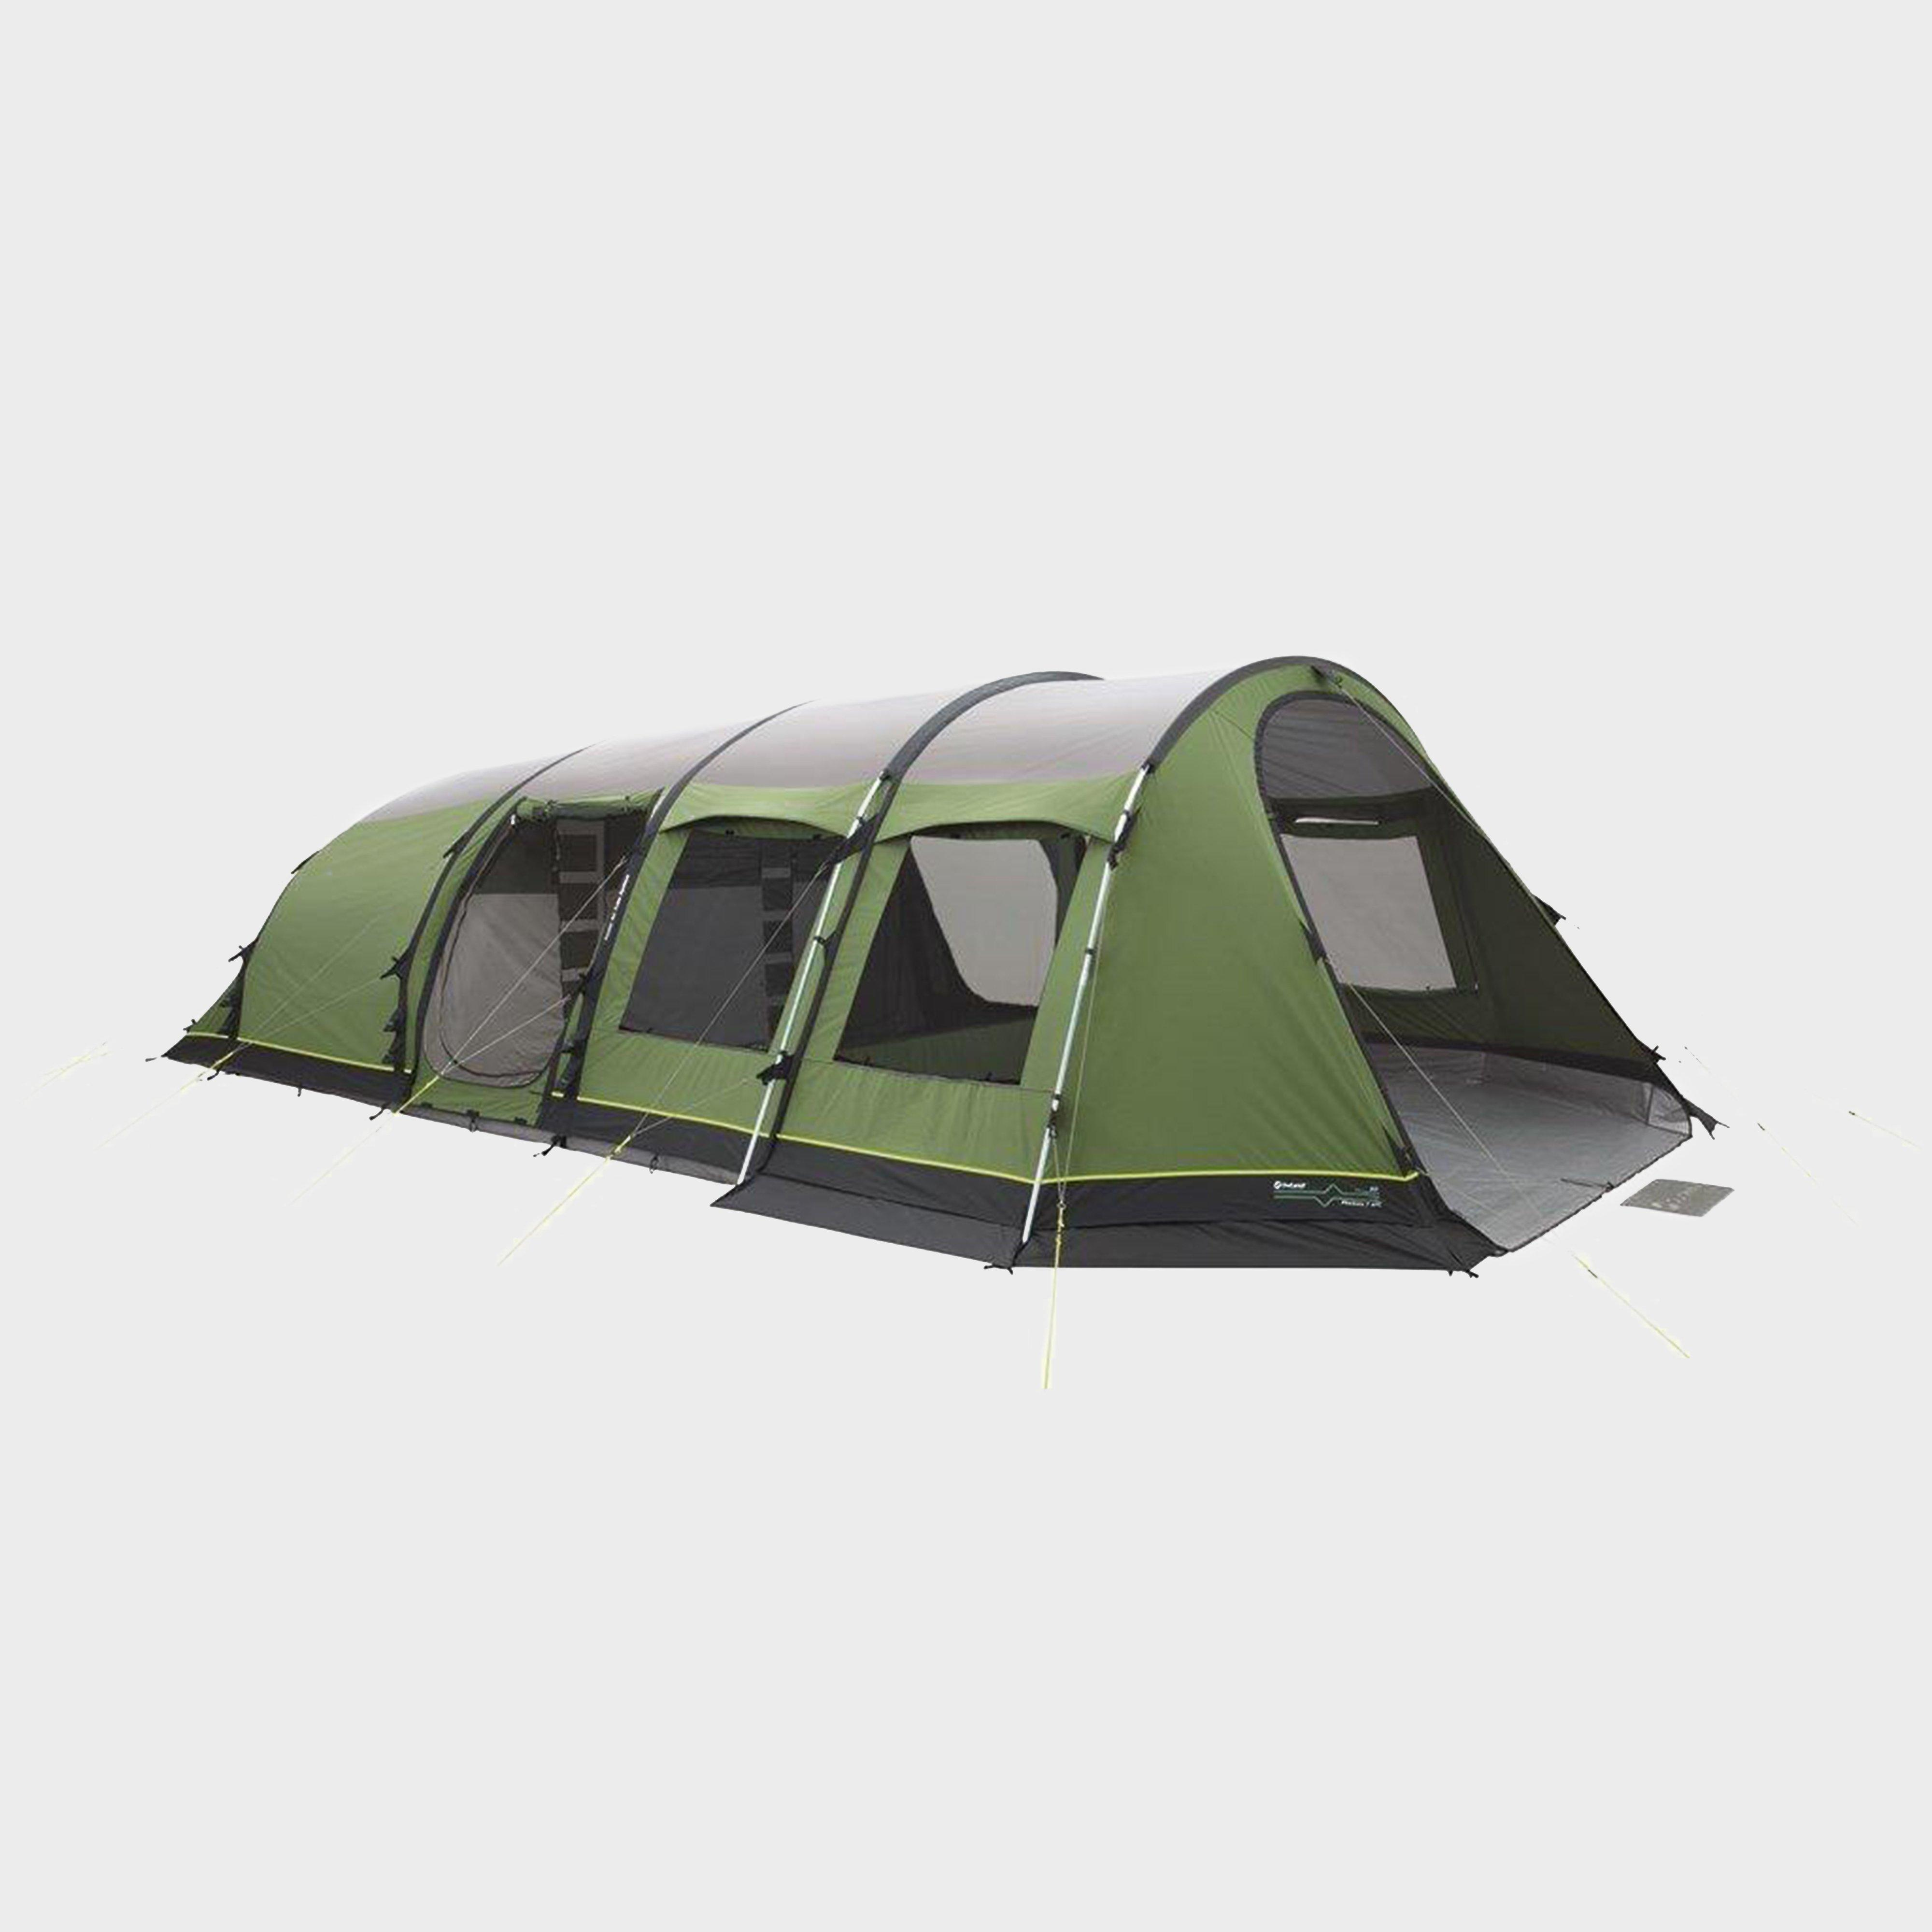 Outwell Outwell Phoenix 7 ATC Inflatable Family Tent  Green Green